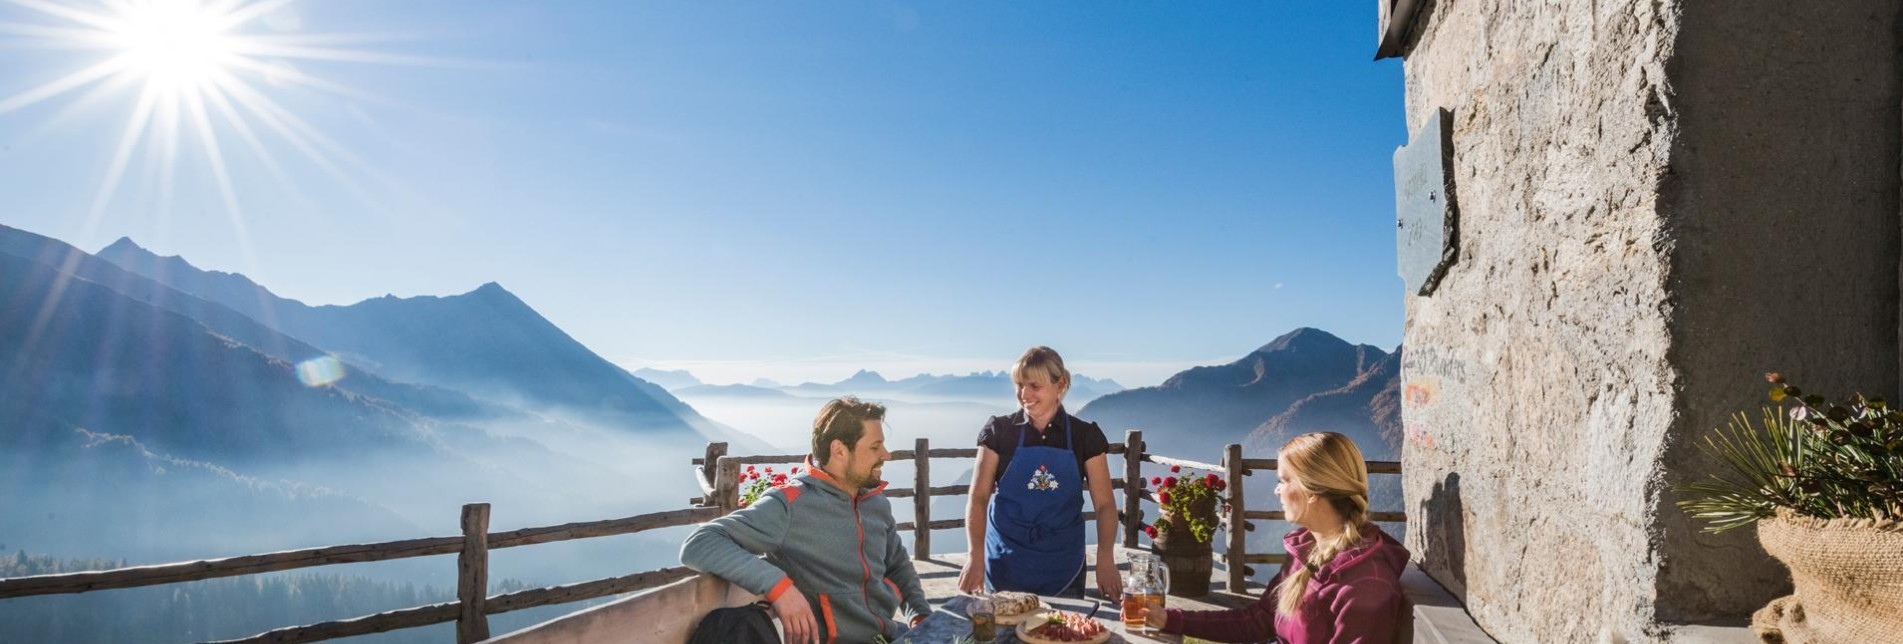 Lodges & Almen South Tyrol